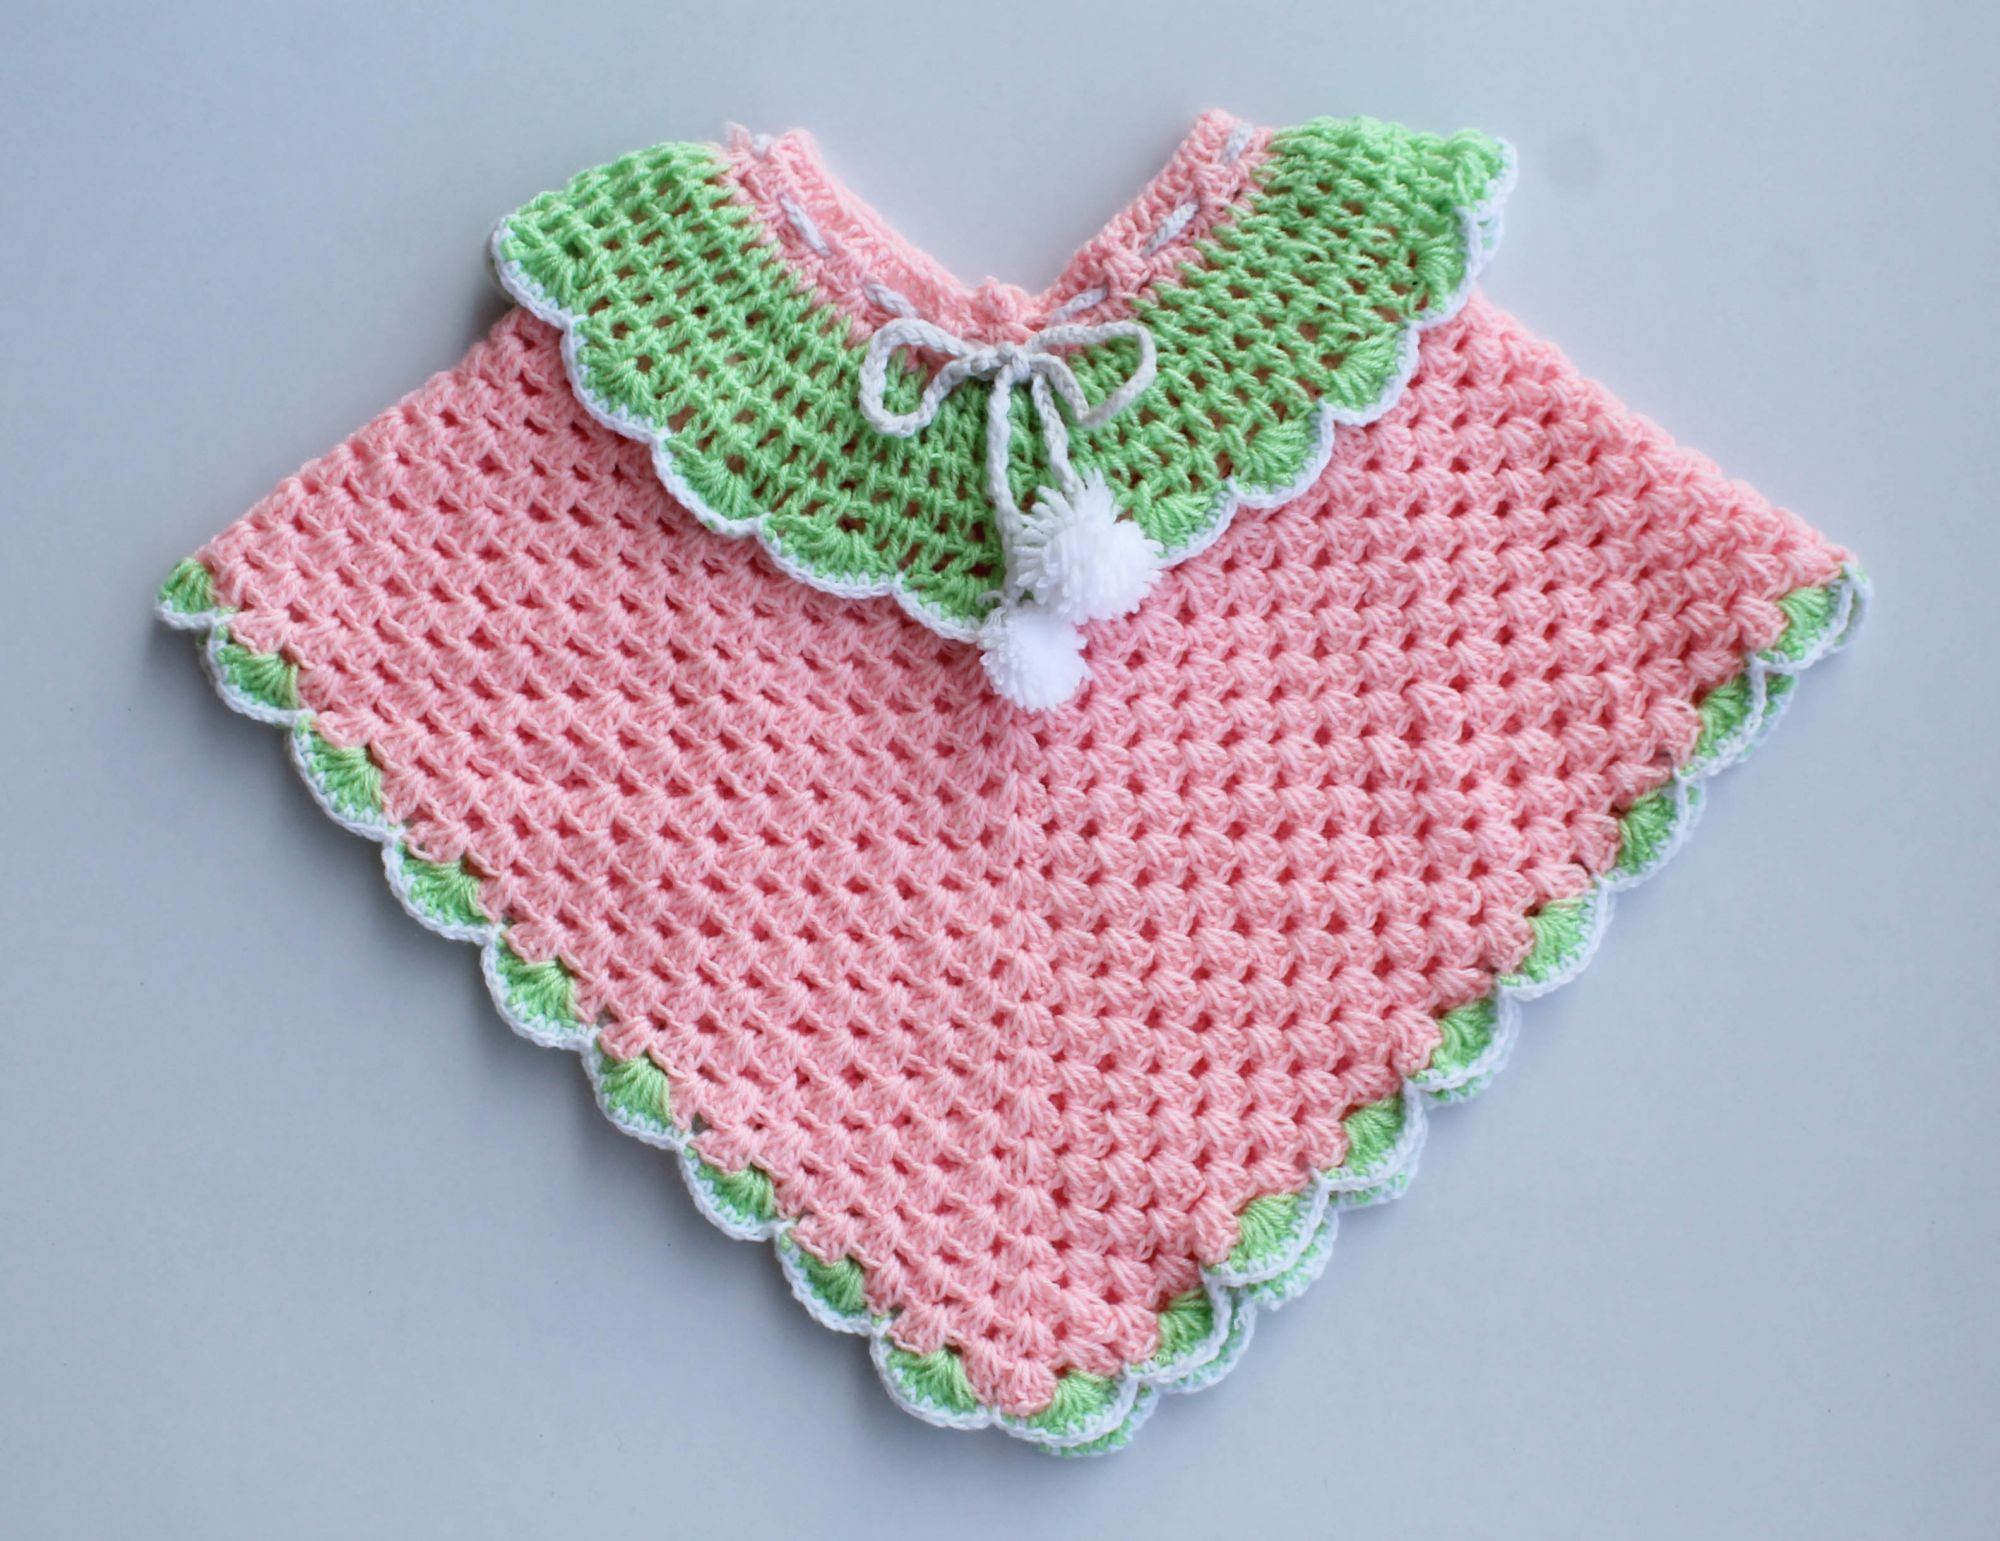 Woonie Handmade Pink and Green Poncho for Kids